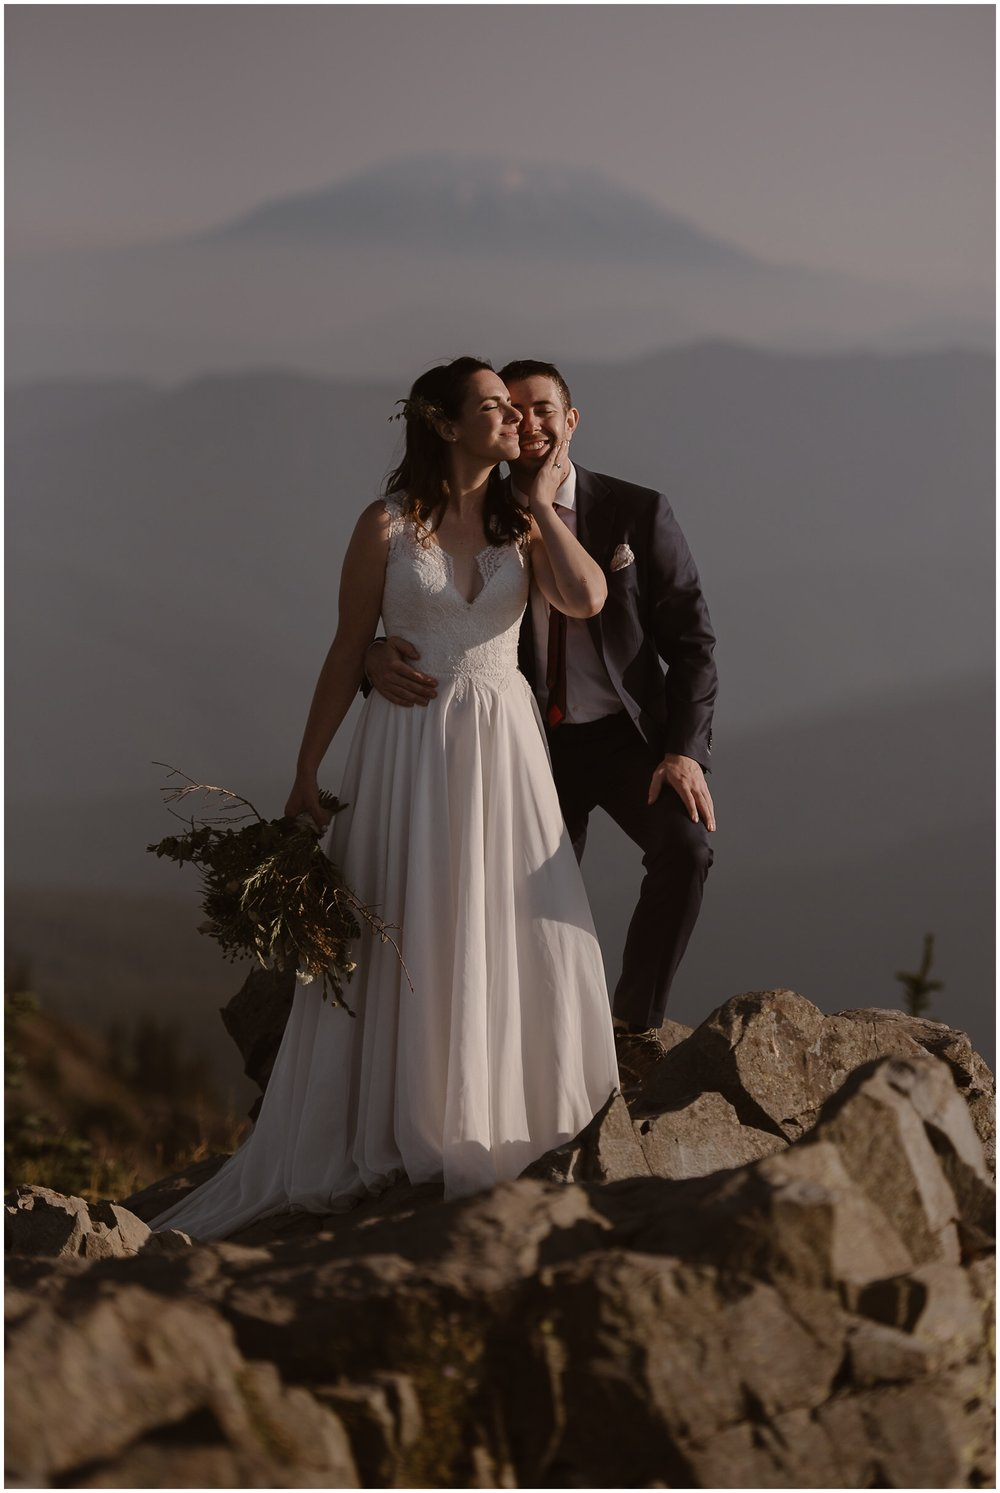 Lauryn and David stand close, holding each other, at the top of their Washington mountain for their adventure elopement photos. In the background, the top of Mount Hood peaks through a thin layer of fog.